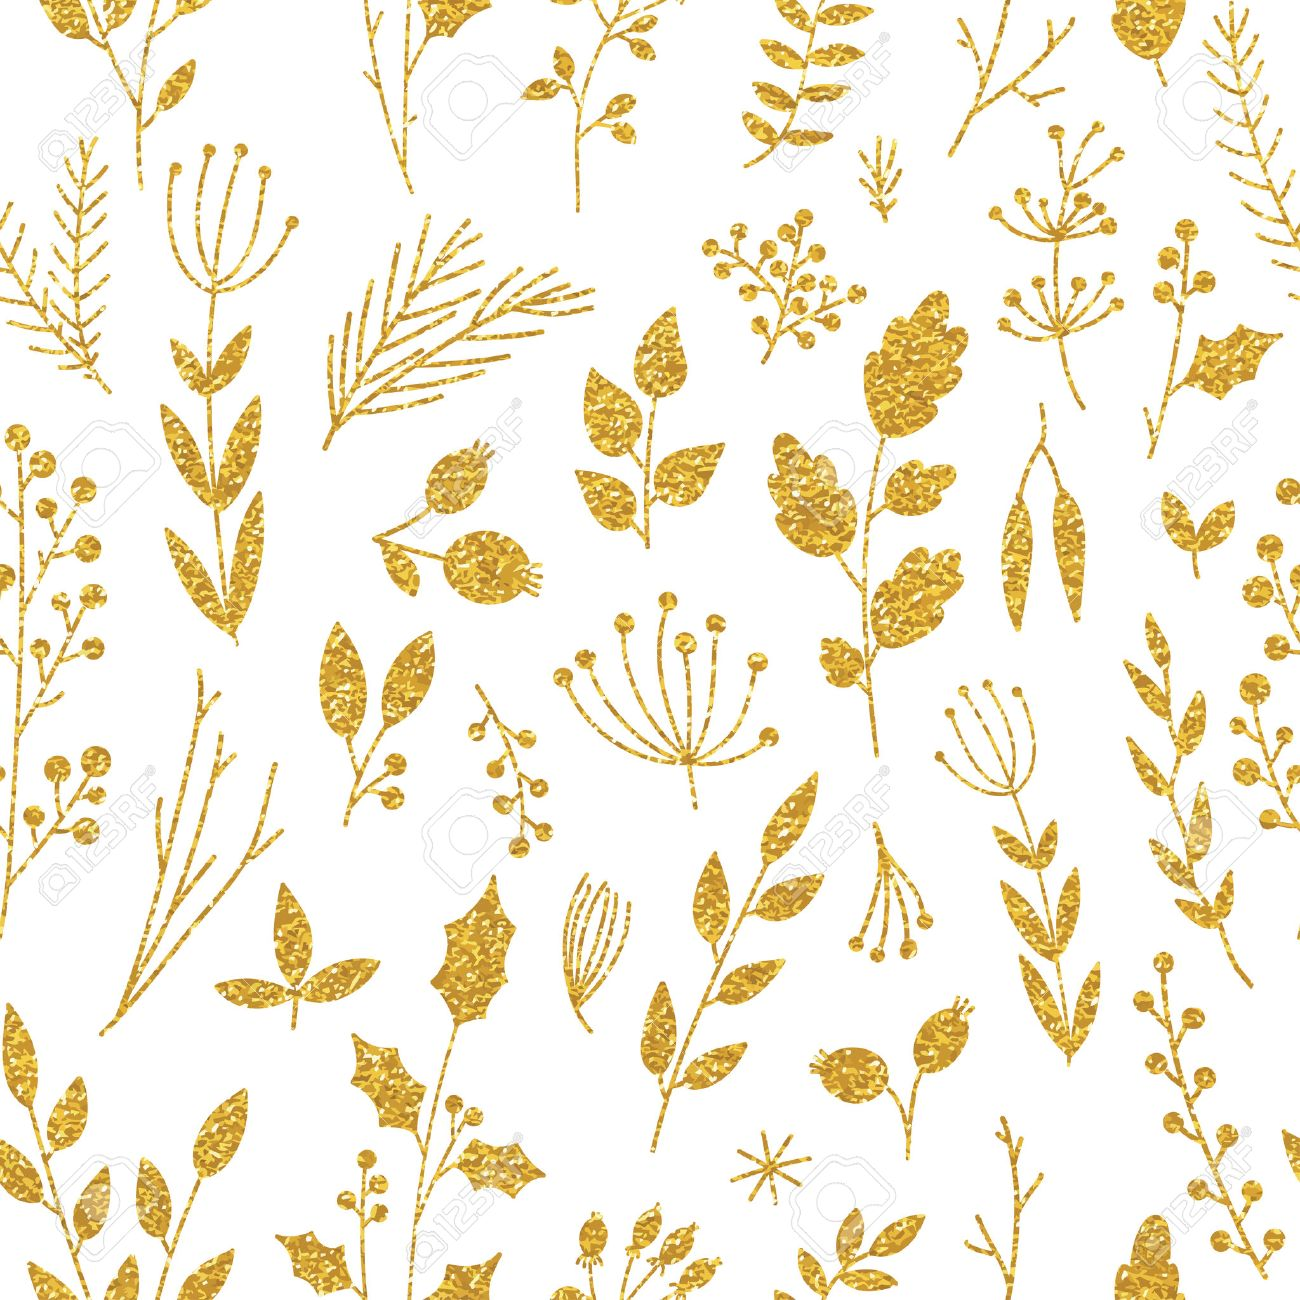 vector gold pattern floral texture with hand drawn flowers and